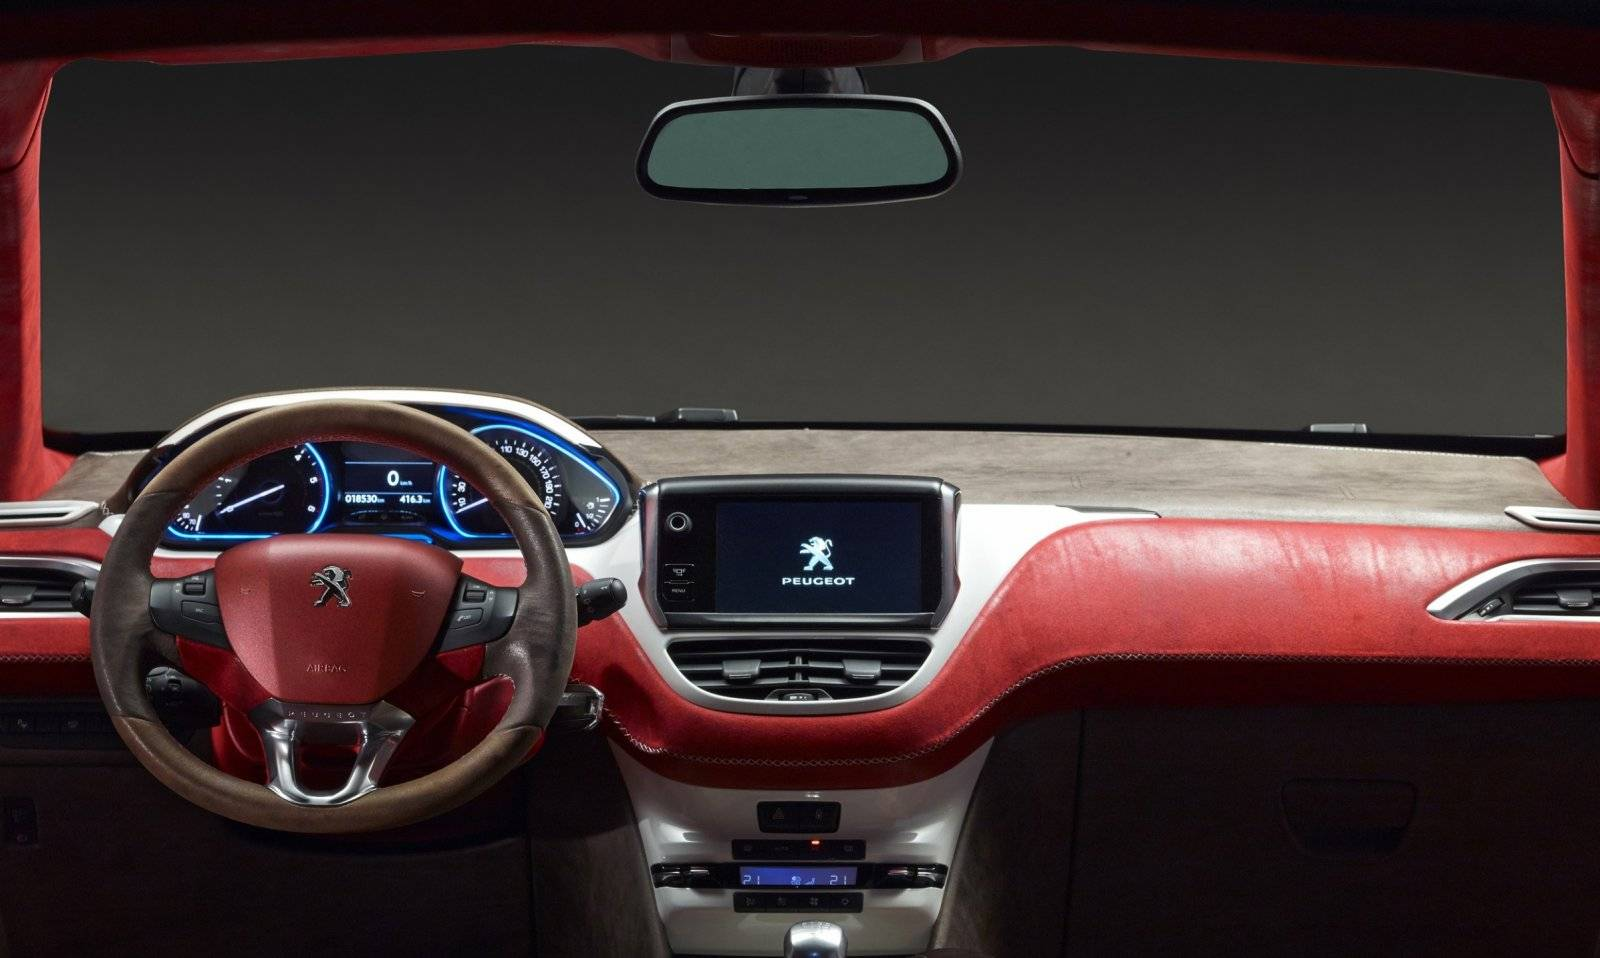 Red Carpet Treatment Voor Peugeot 2008 Tuning Amp Styling Autowereld Com